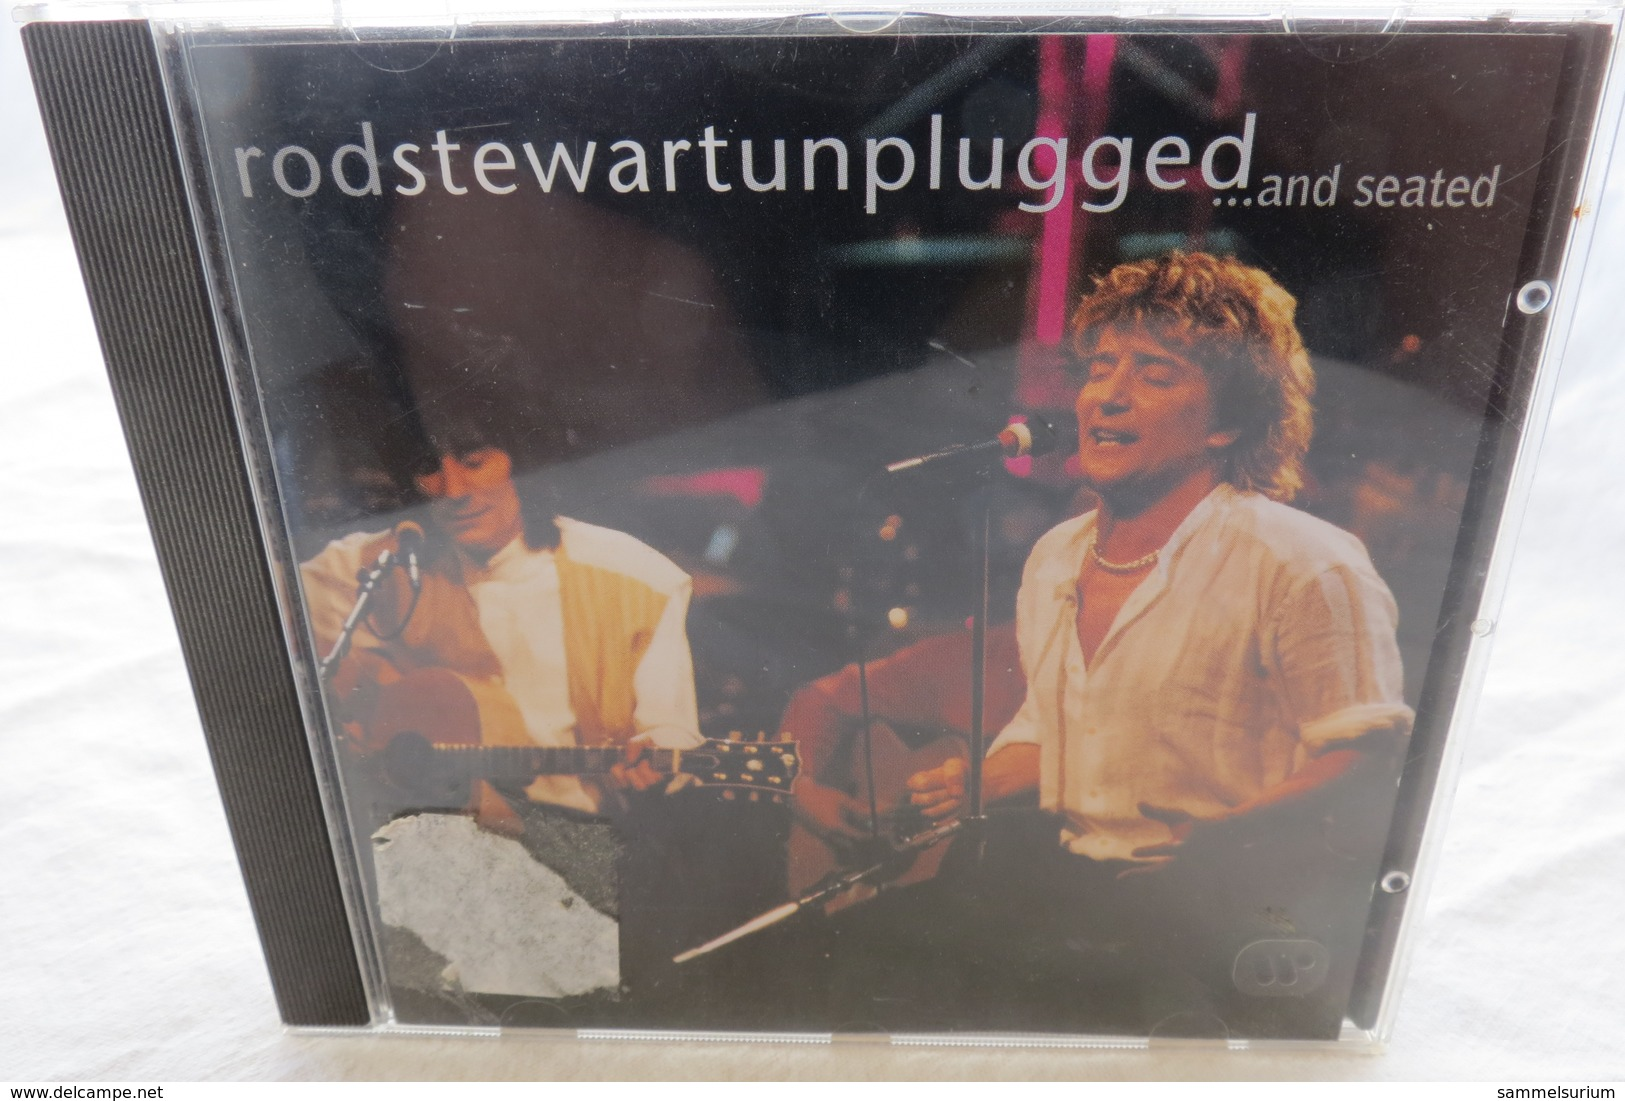 """CD """"Rod Stewart"""" Unplugged And Seated - Musik & Instrumente"""